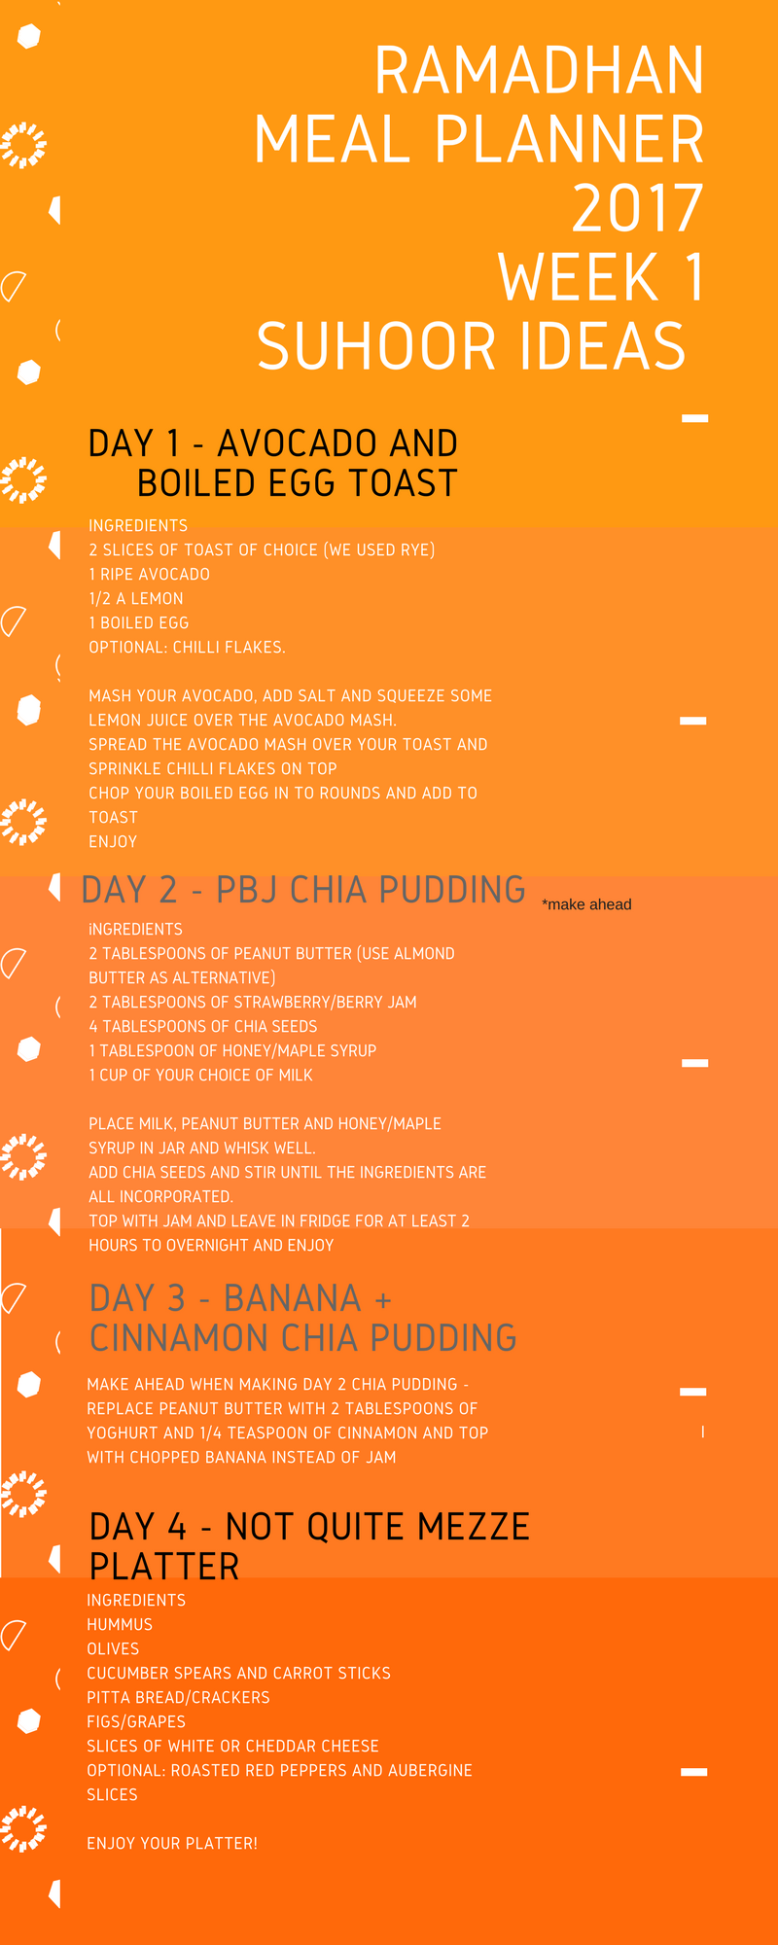 ramadhan meal planner 2017suhoor ideas week 1.png